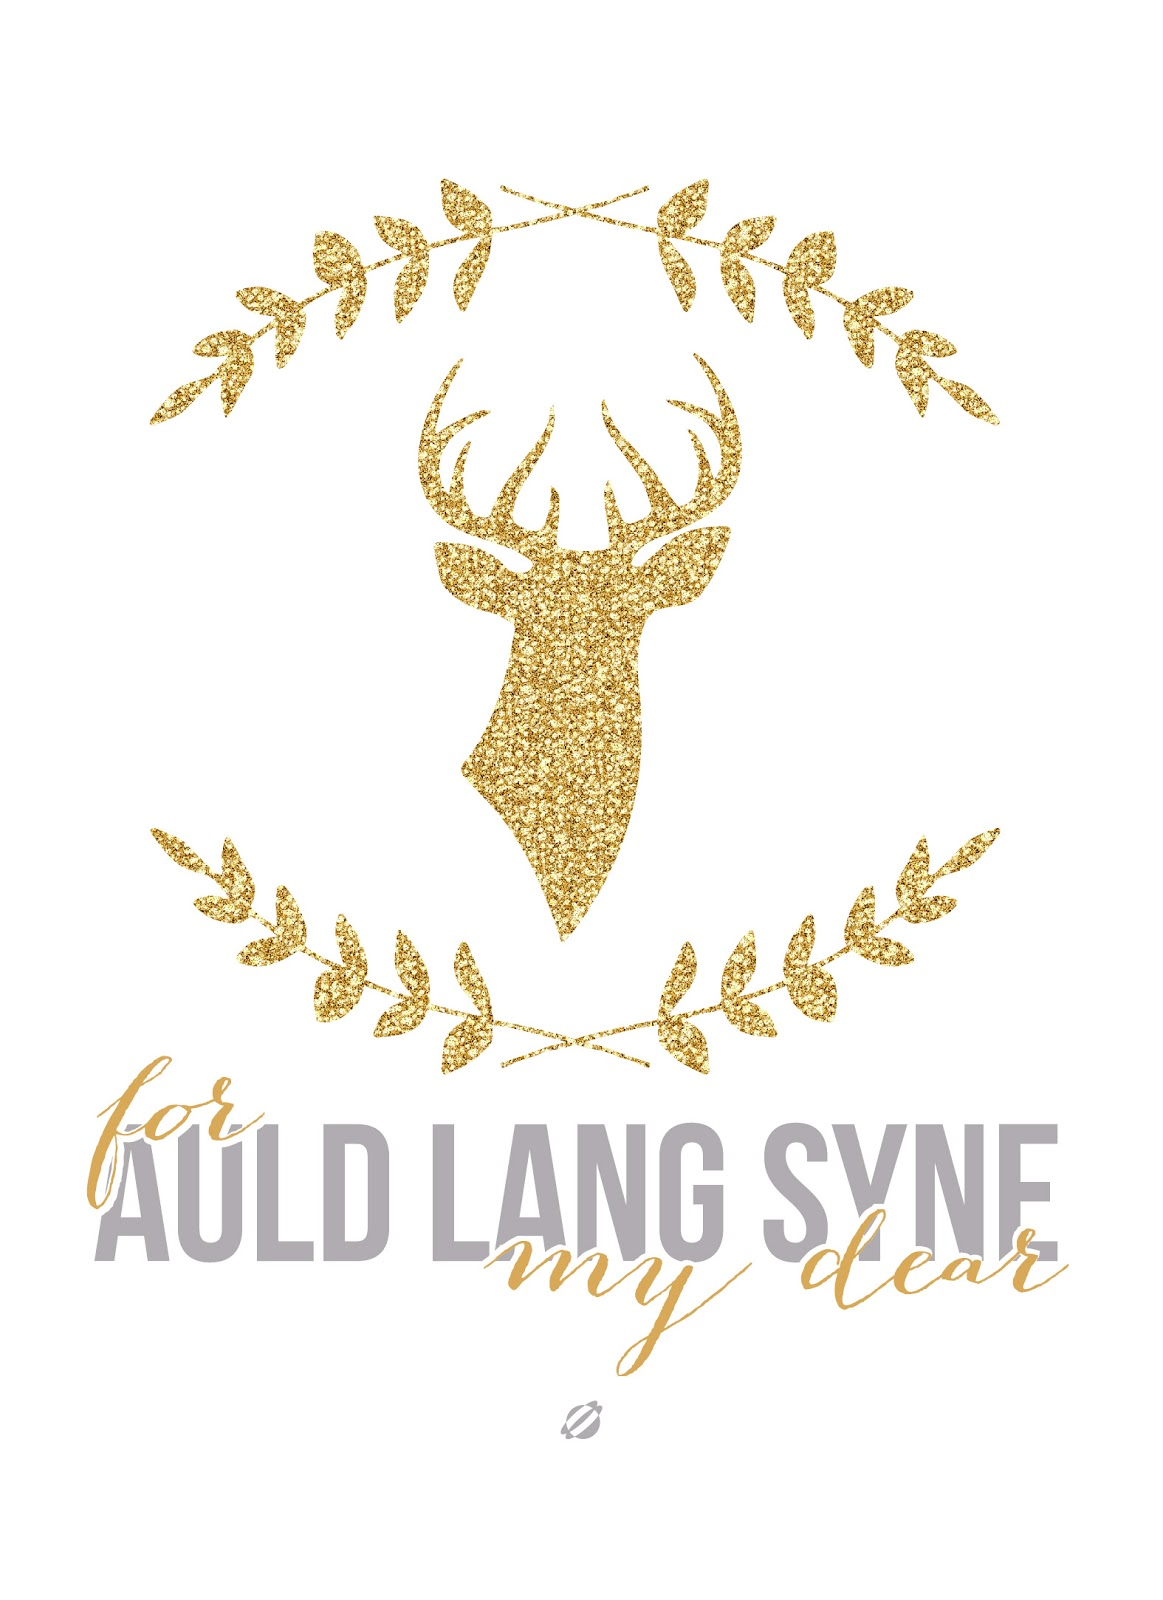 LostBumblebee 2013 - For Auld Lang Syne - New Year- Free Printable